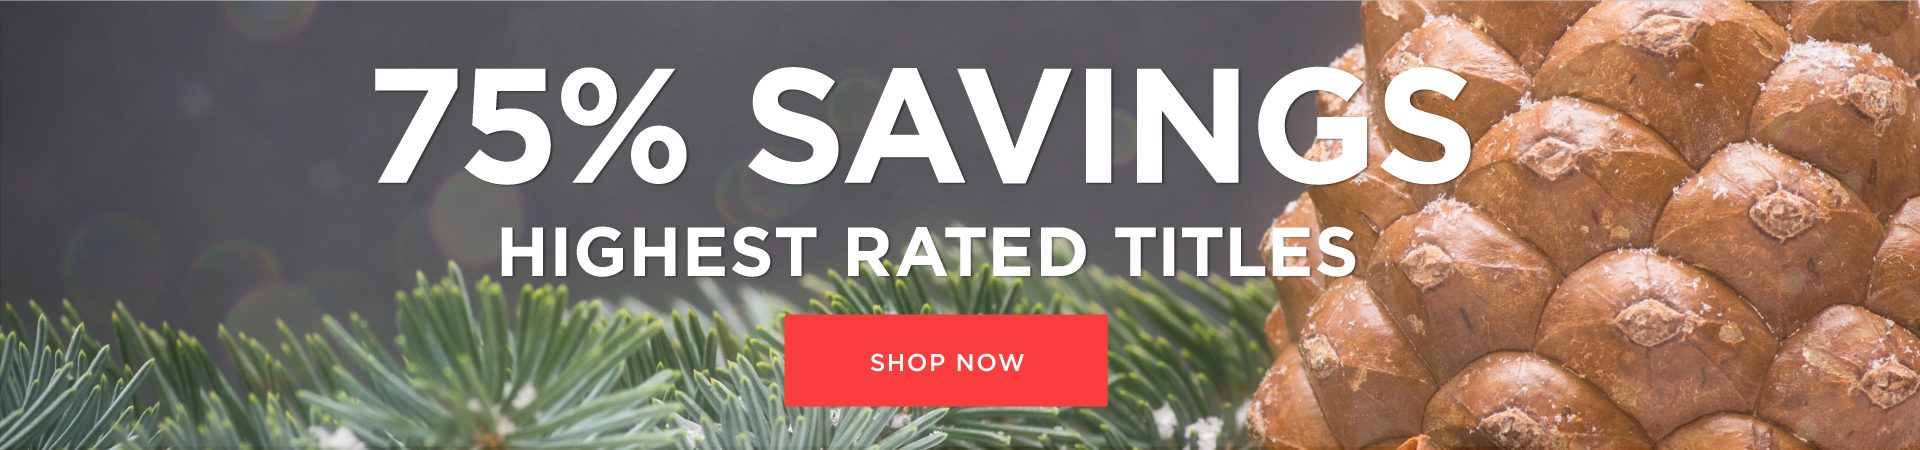 2016 Highest Rated Holiday Super Sale